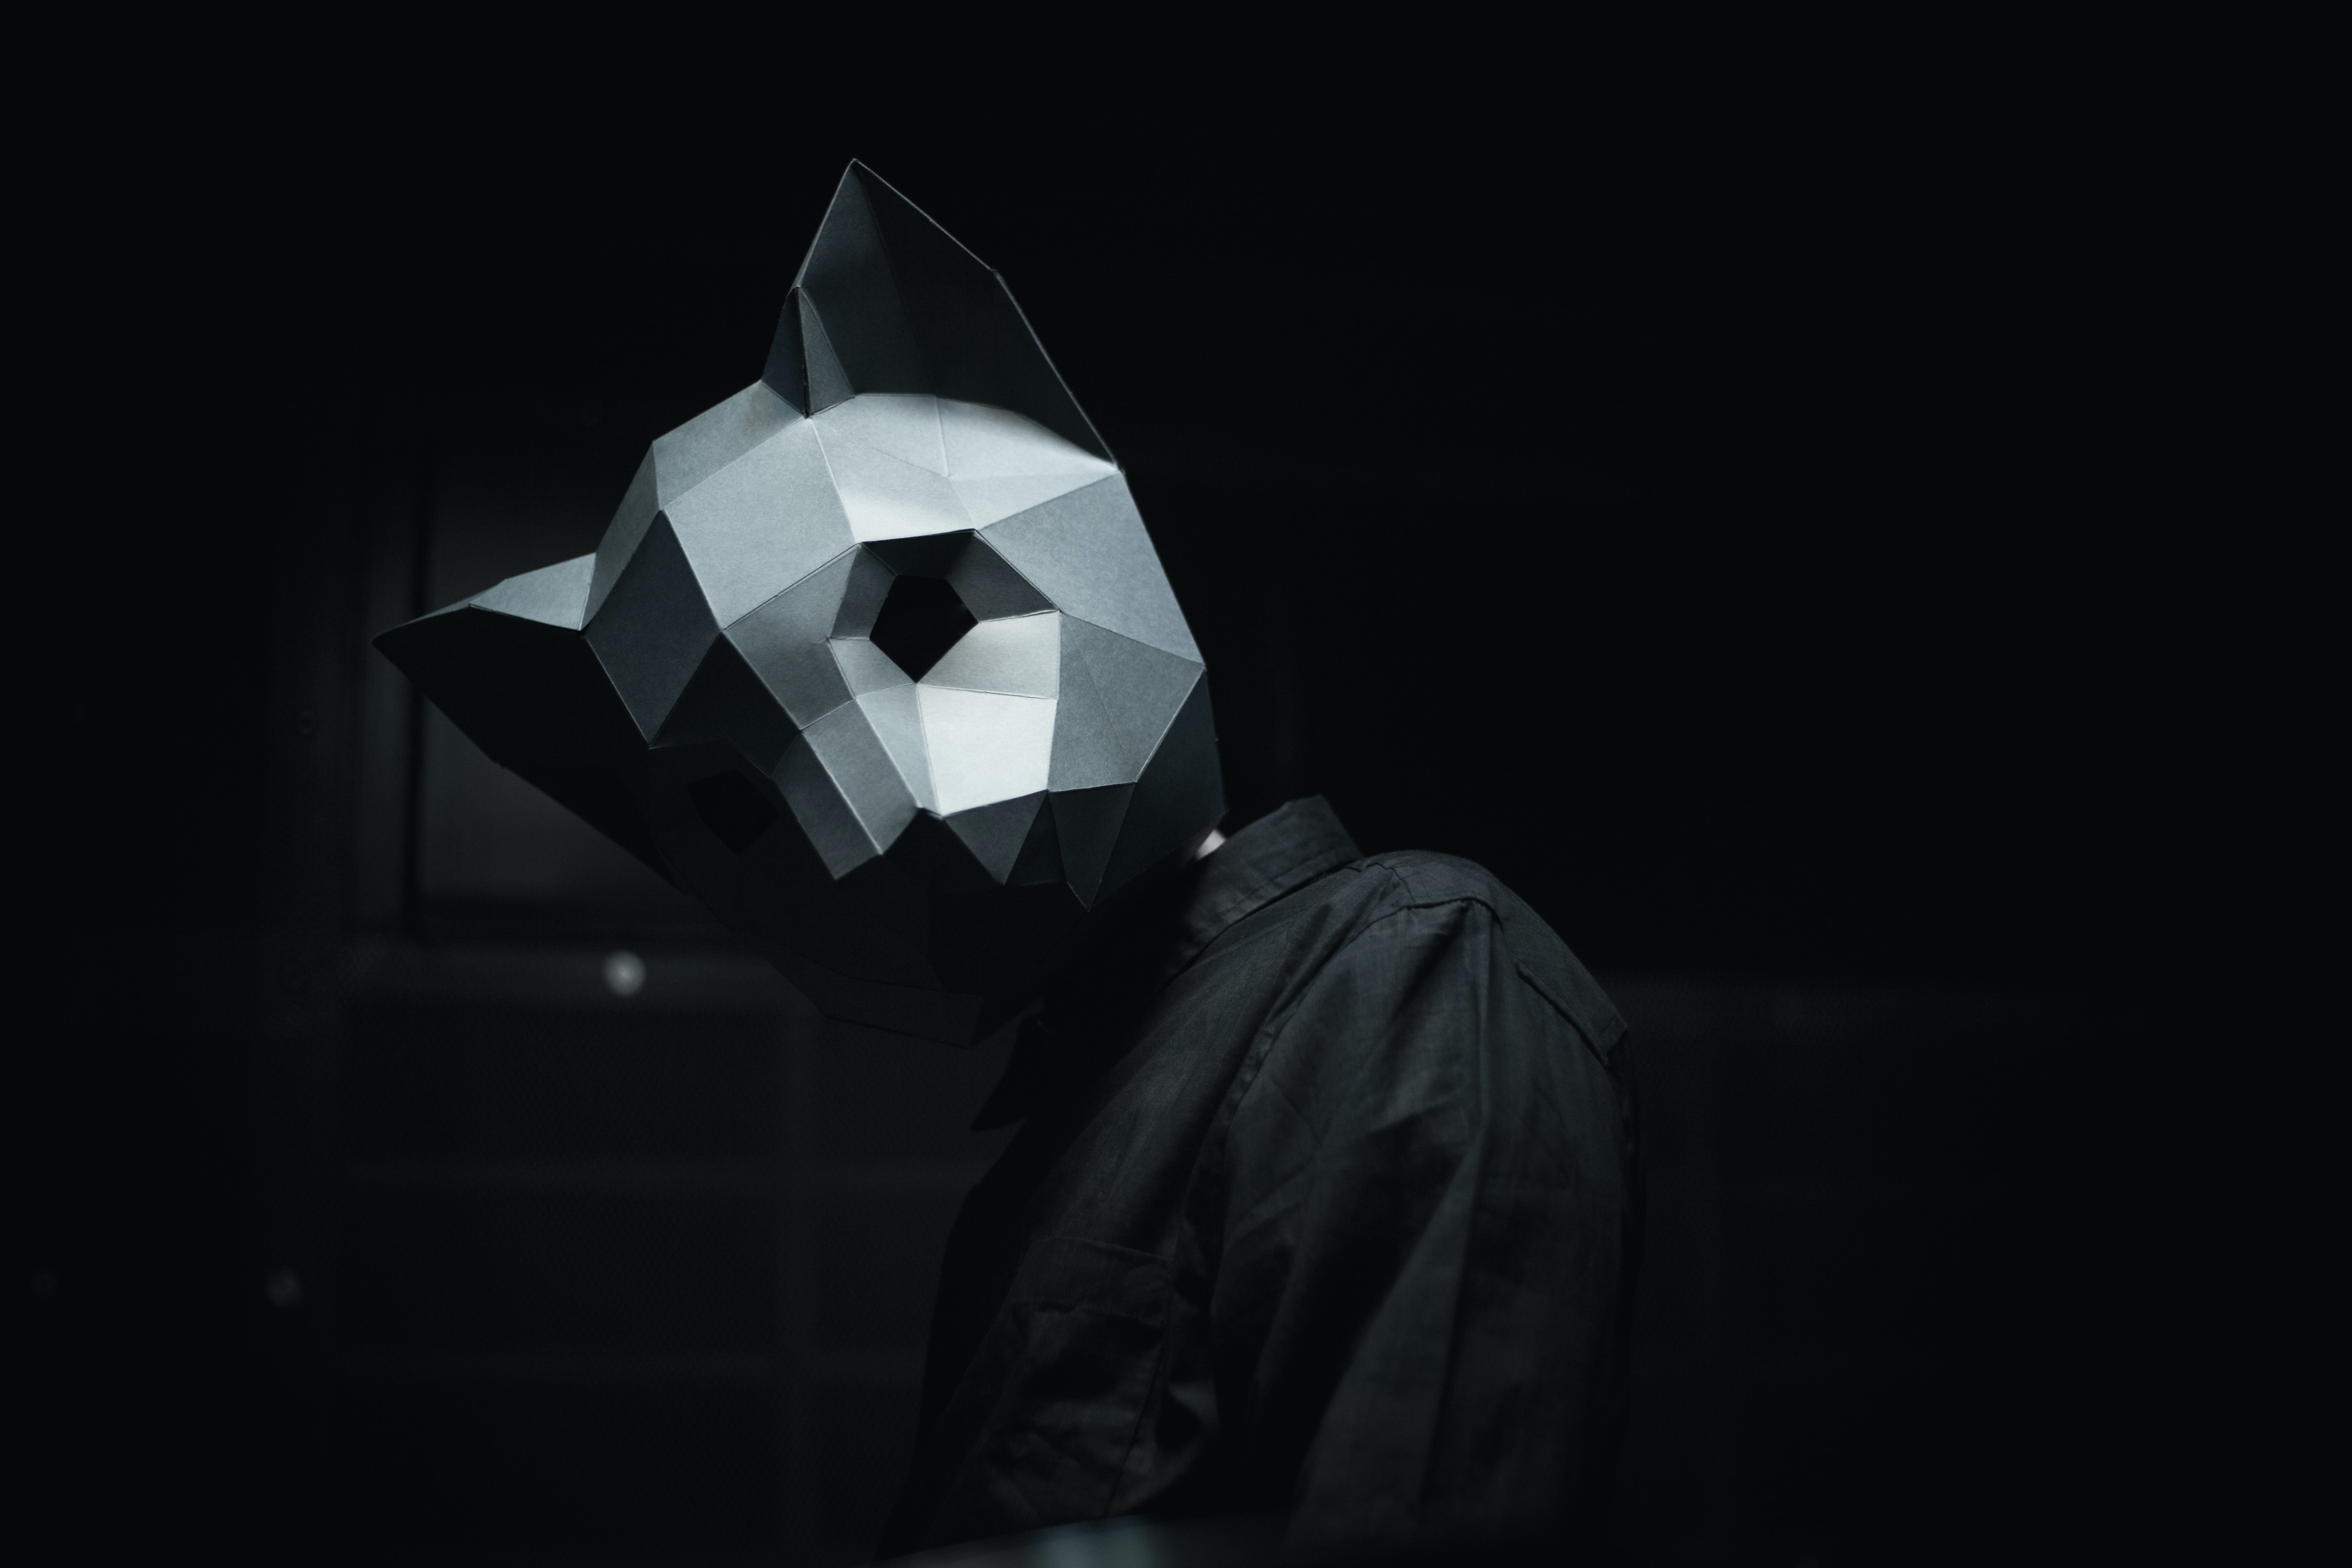 person wearing gray mask